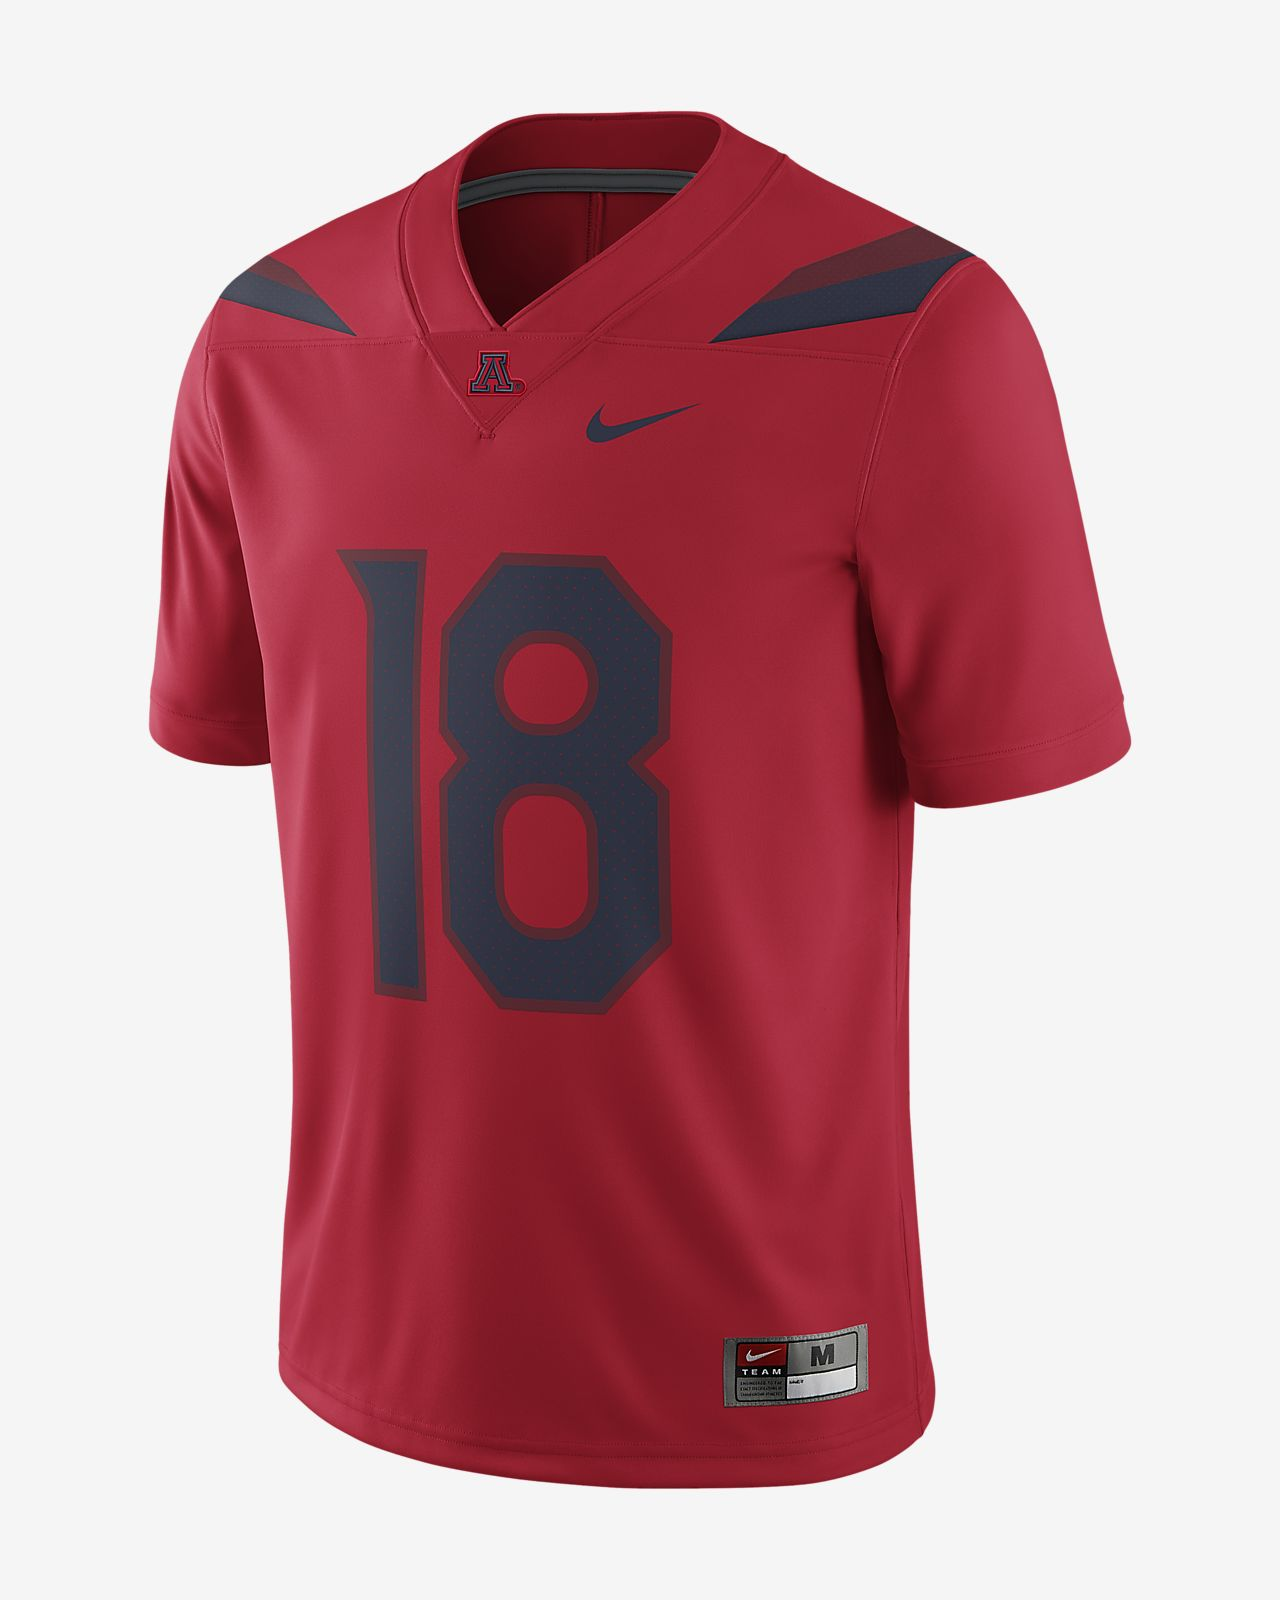 Nike College Game (Arizona) Men's Football Jersey